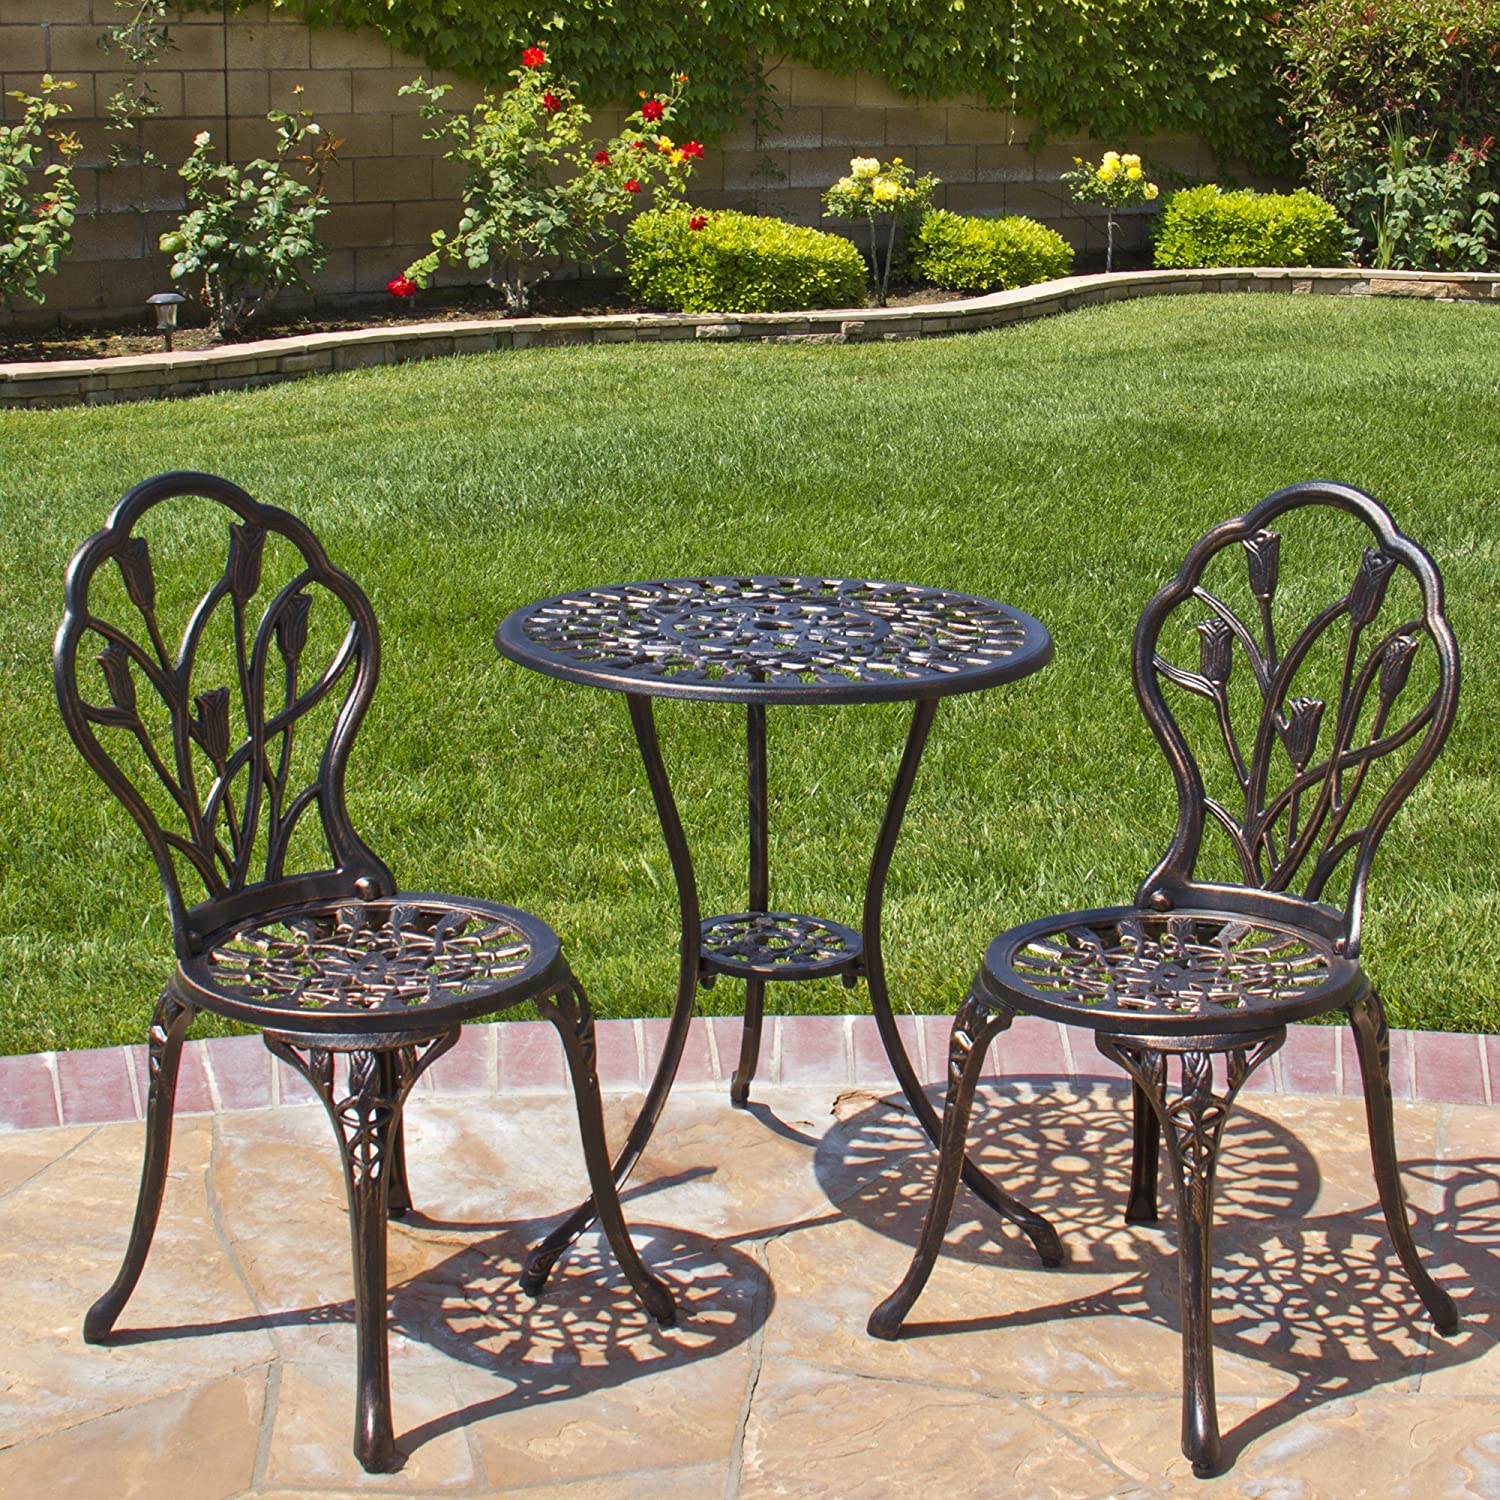 best choice products outdoor patio furniture tulip design cast aluminum bistro set in antique - Best Outdoor Patio Furniture